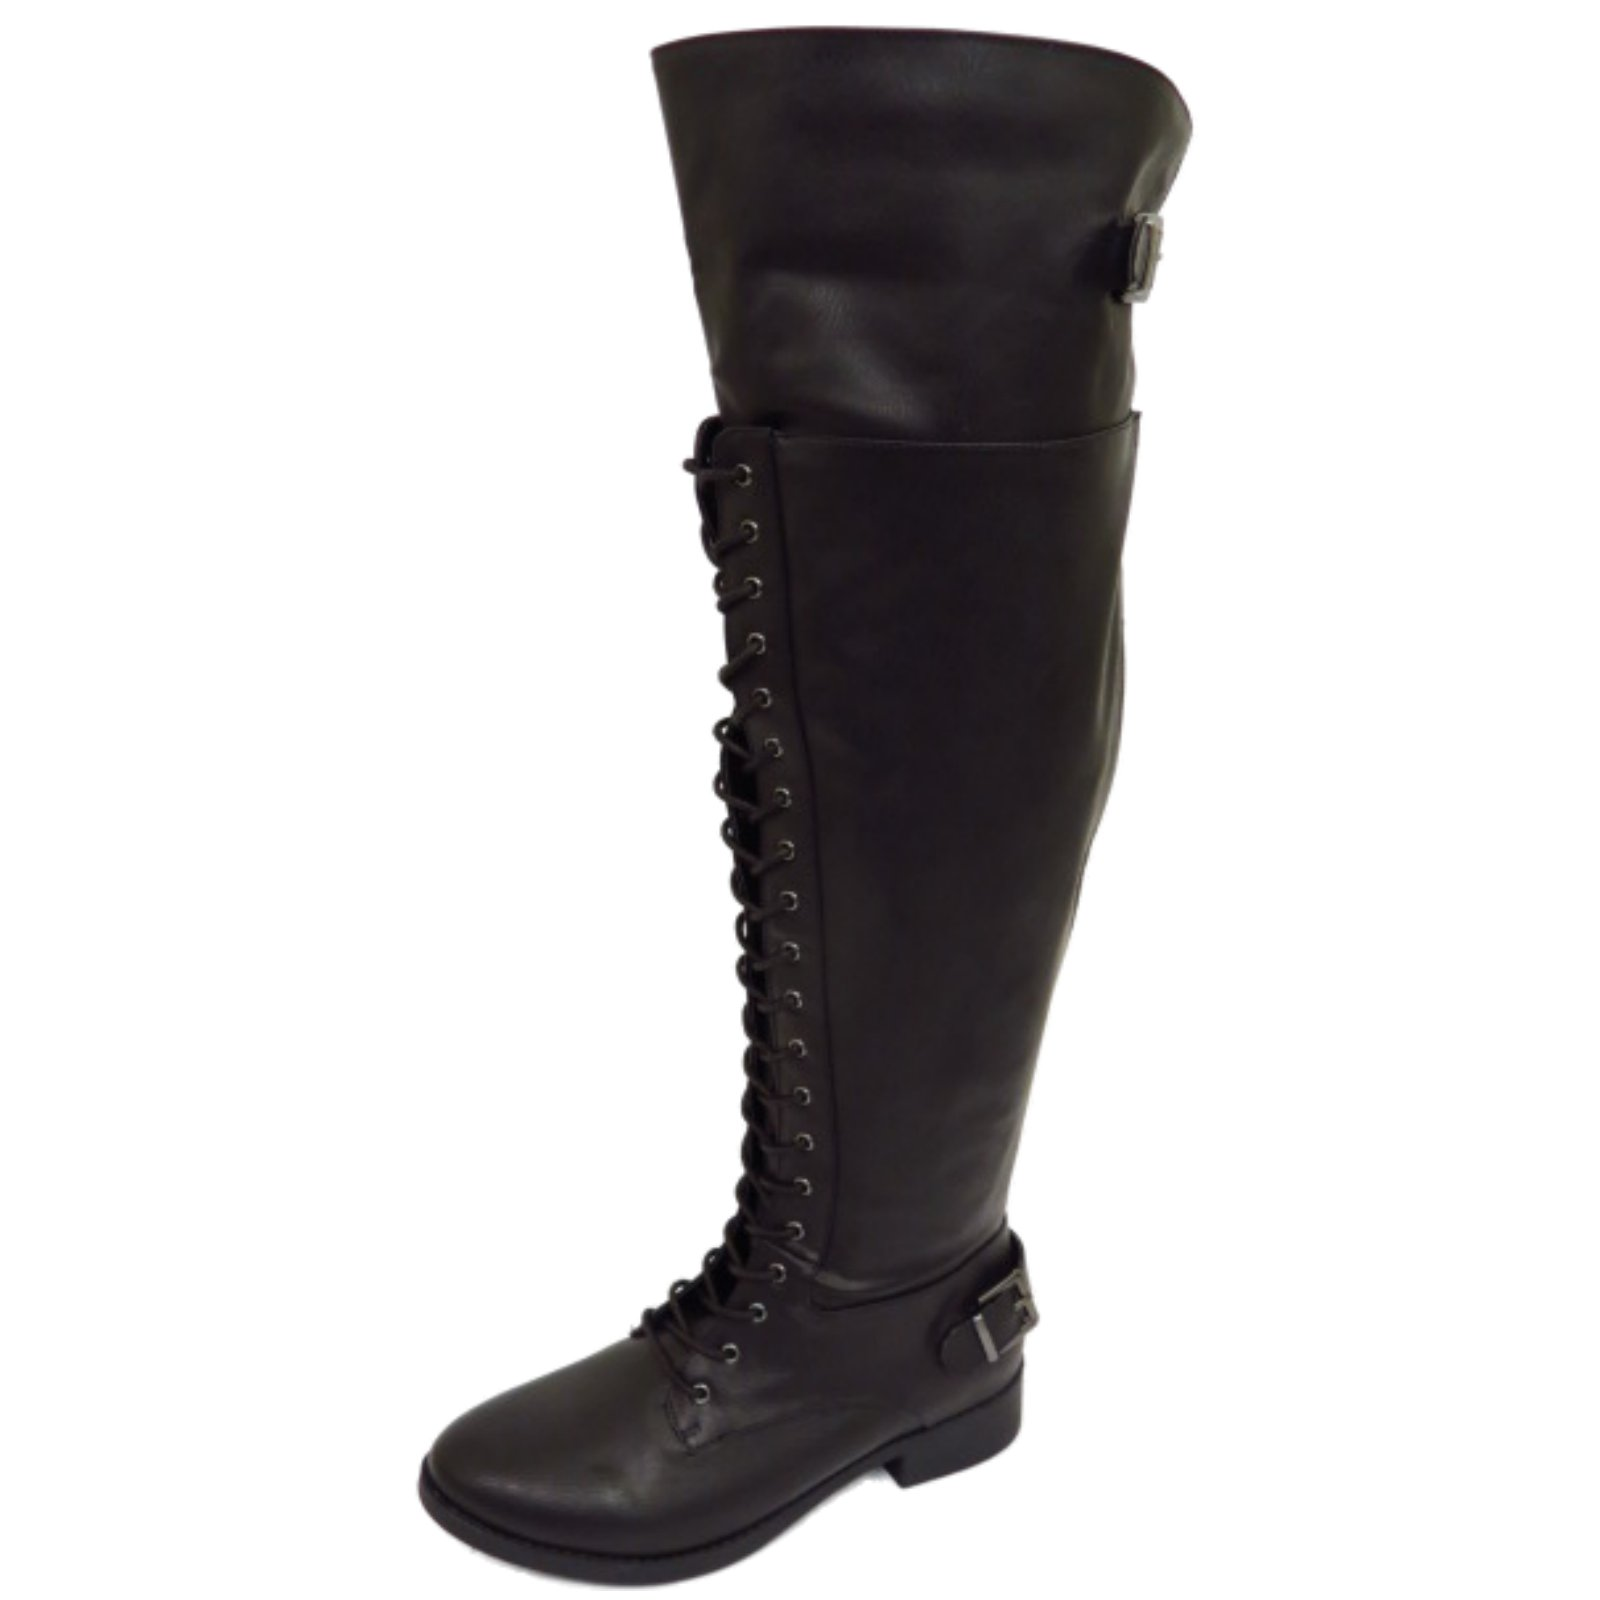 706eaf71704cf Sentinel WOMENS BLACK EXTRA WIDE CALF FIT LACE-UP BIKER KNEE-HIGH RIDING  TALL BOOTS